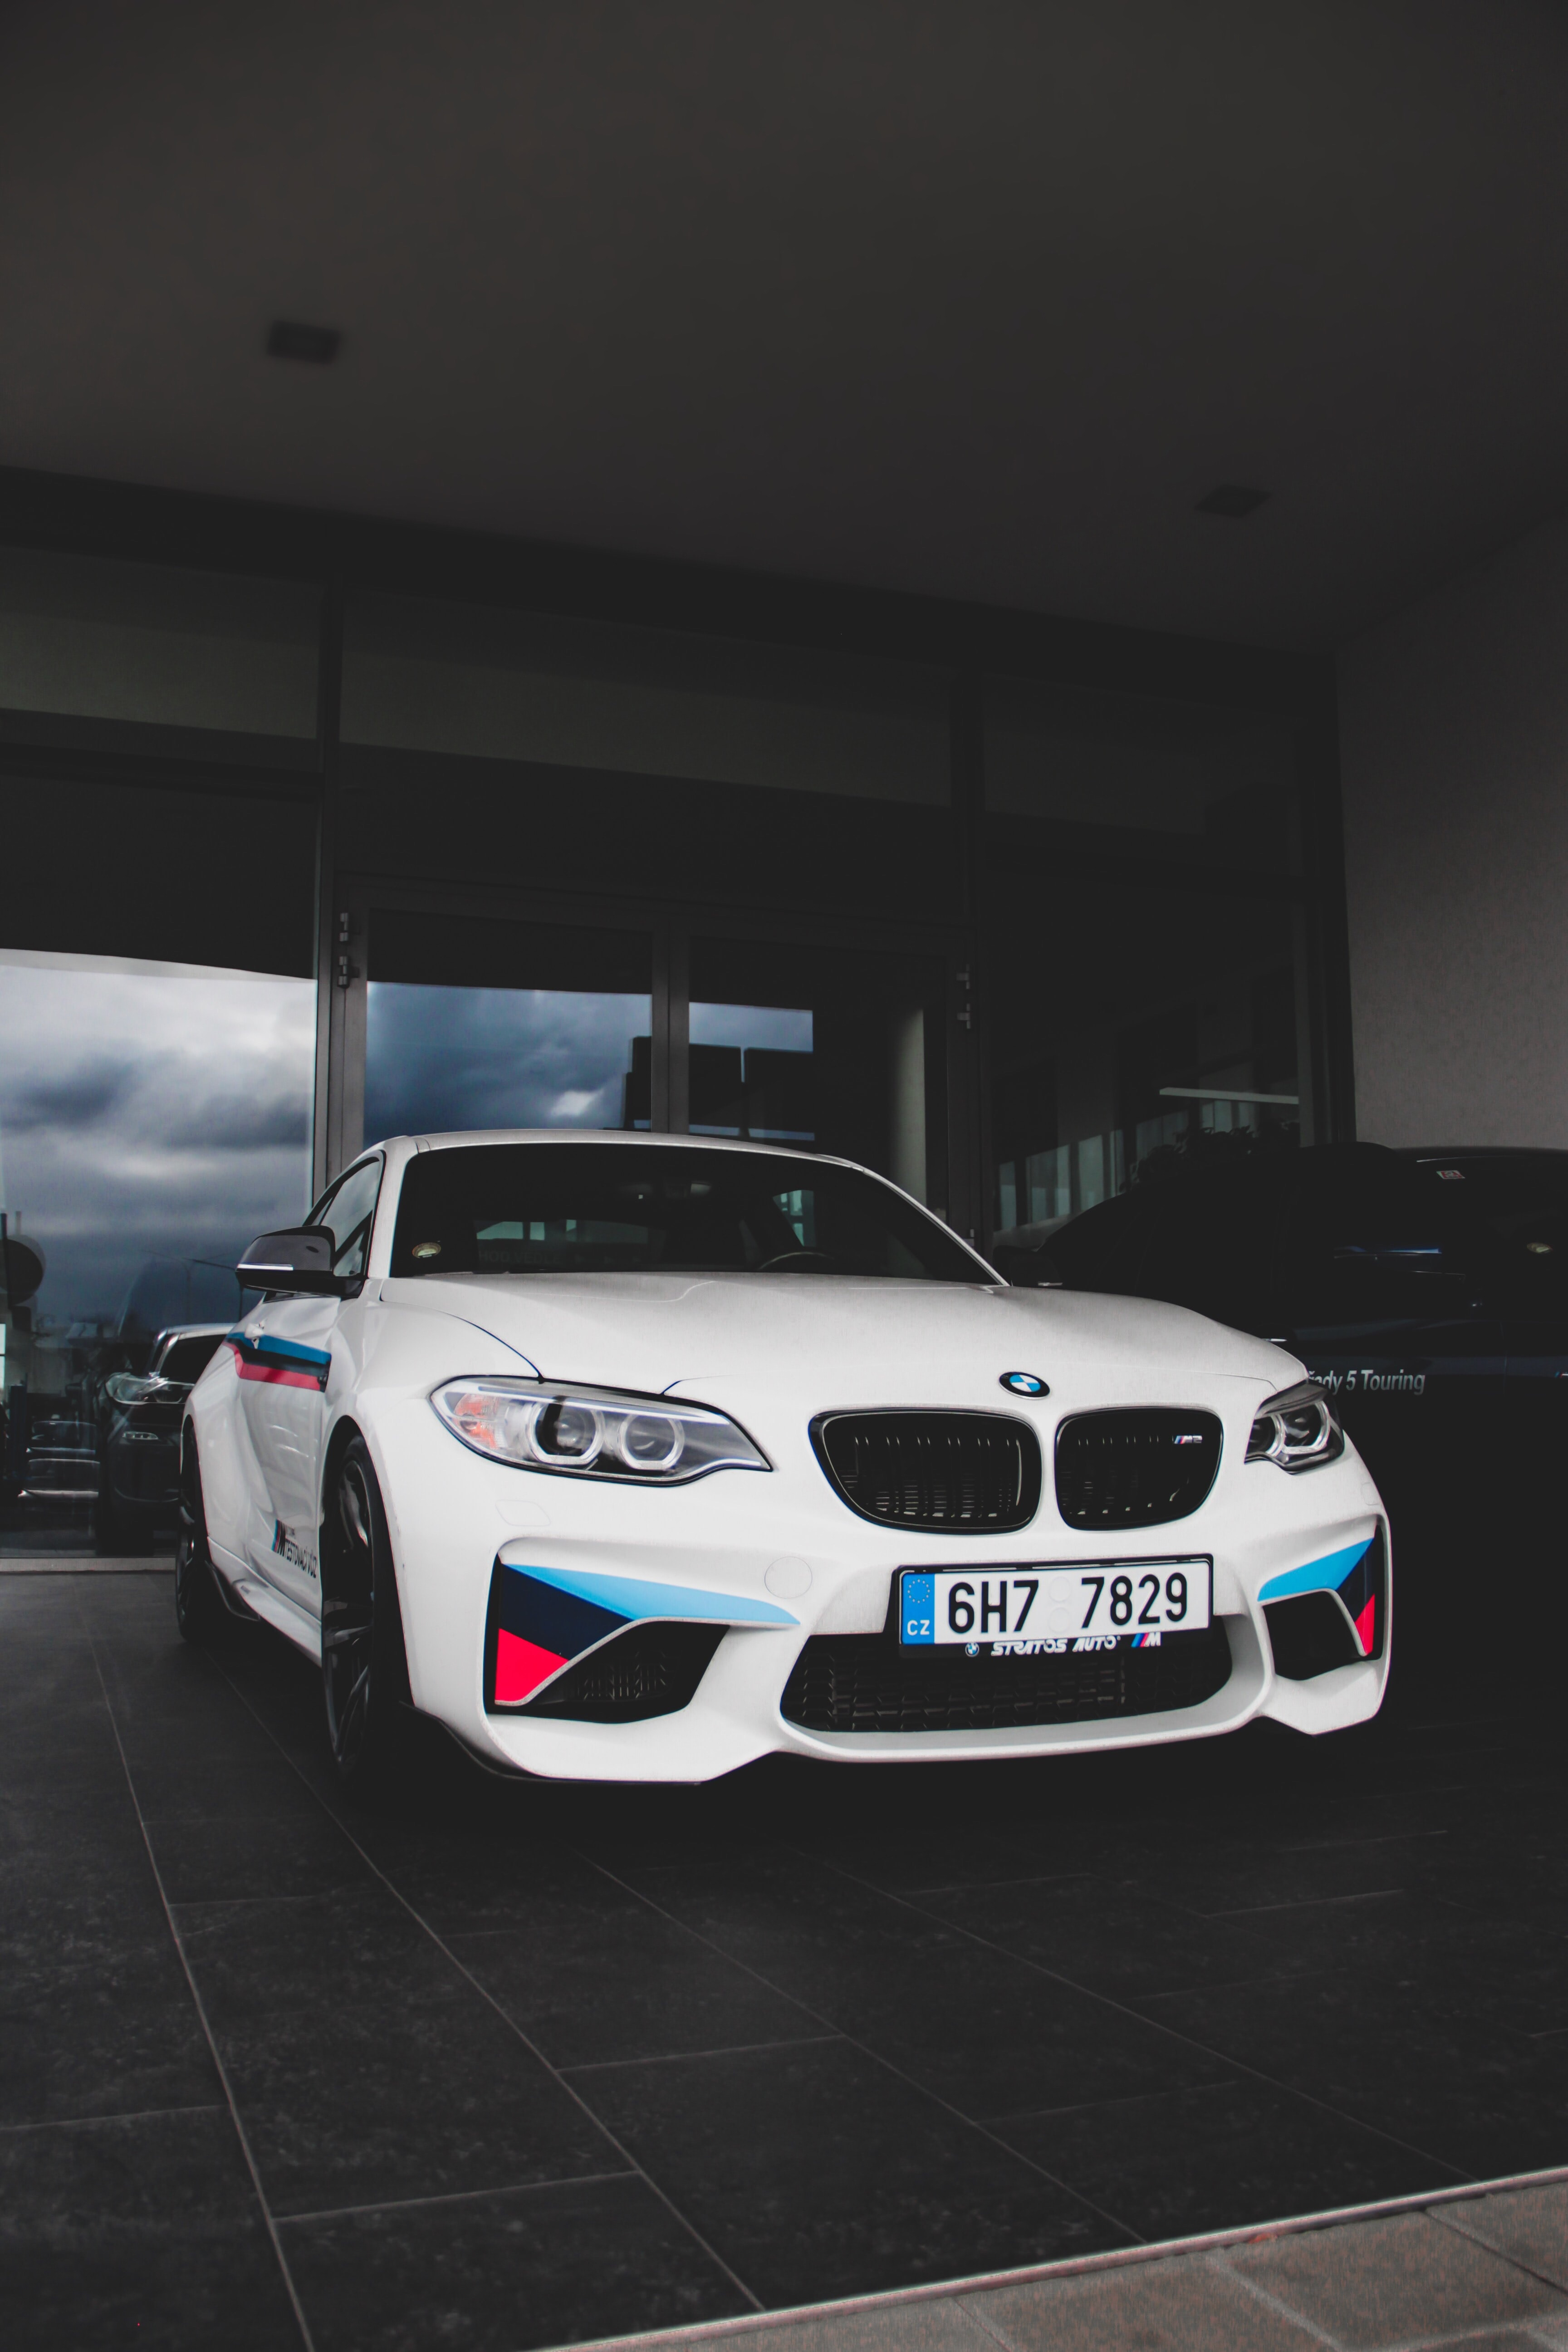 Bmw Car Pictures Download Free Images On Unsplash